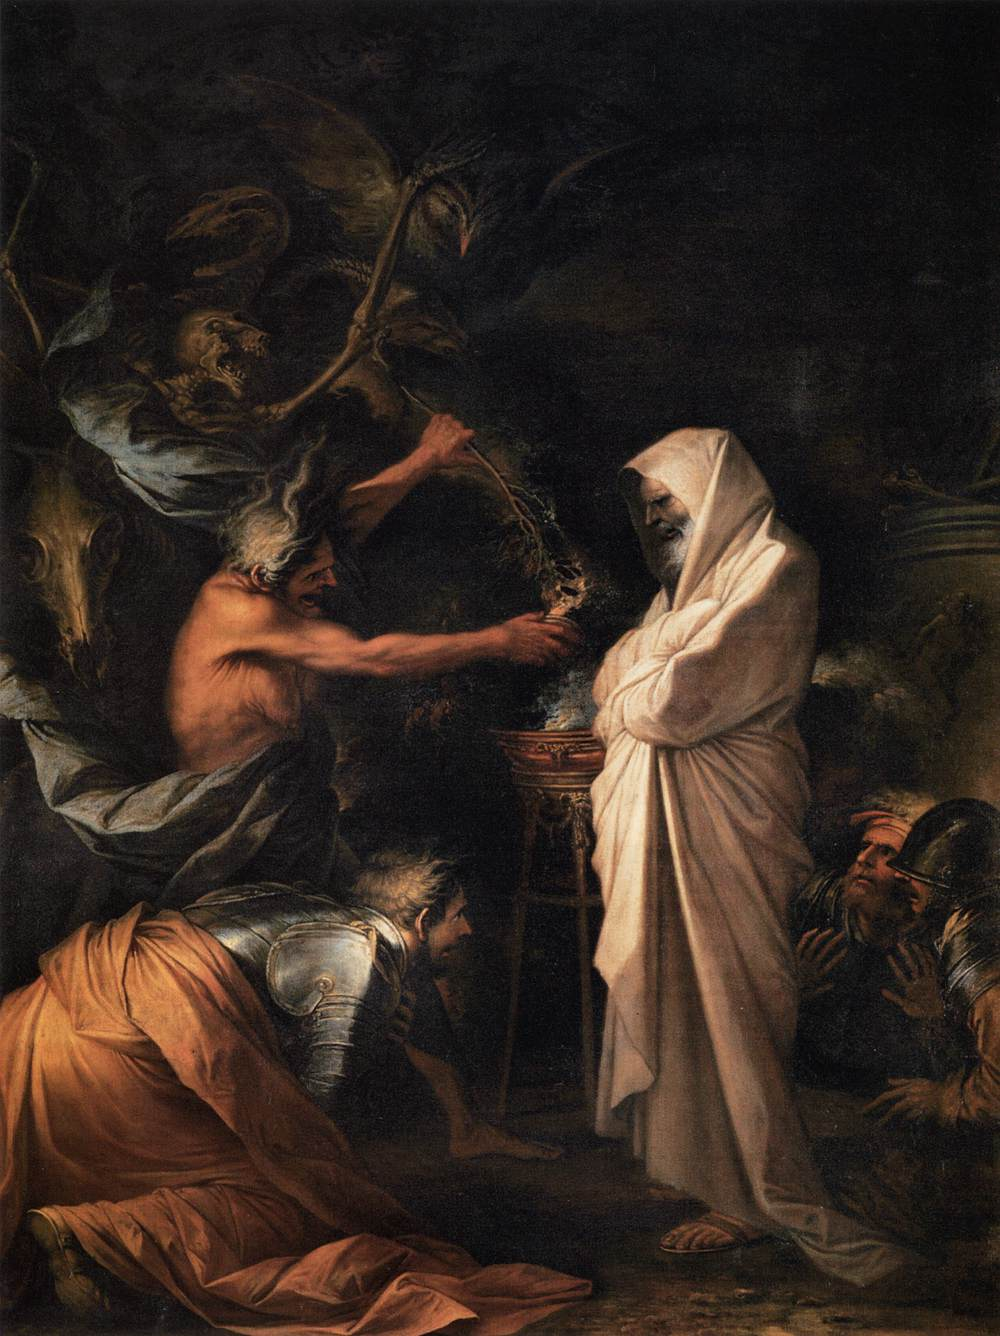 An image of Saul and the Witch of Endor.